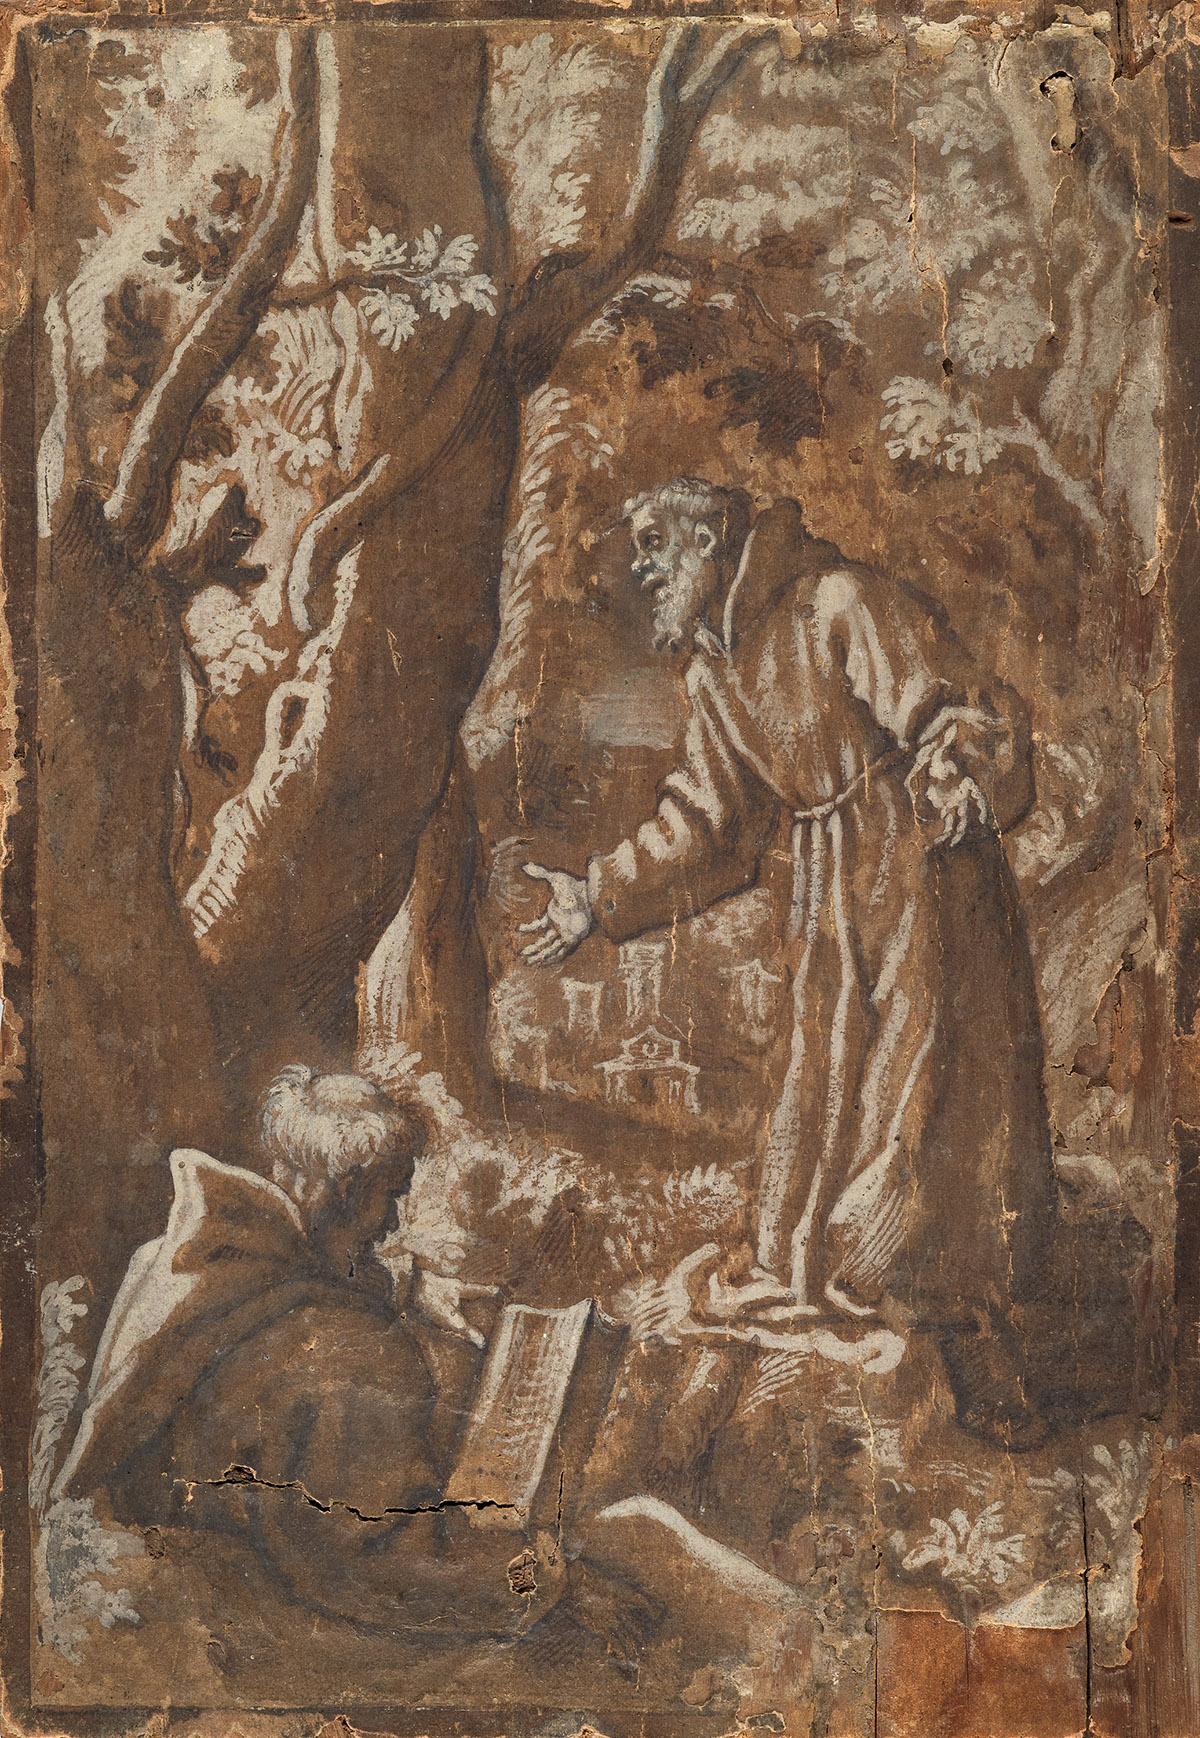 ITALIAN-SCHOOL-LATE-16TH-CENTURY-Two-Monks-in-the-Wilderness